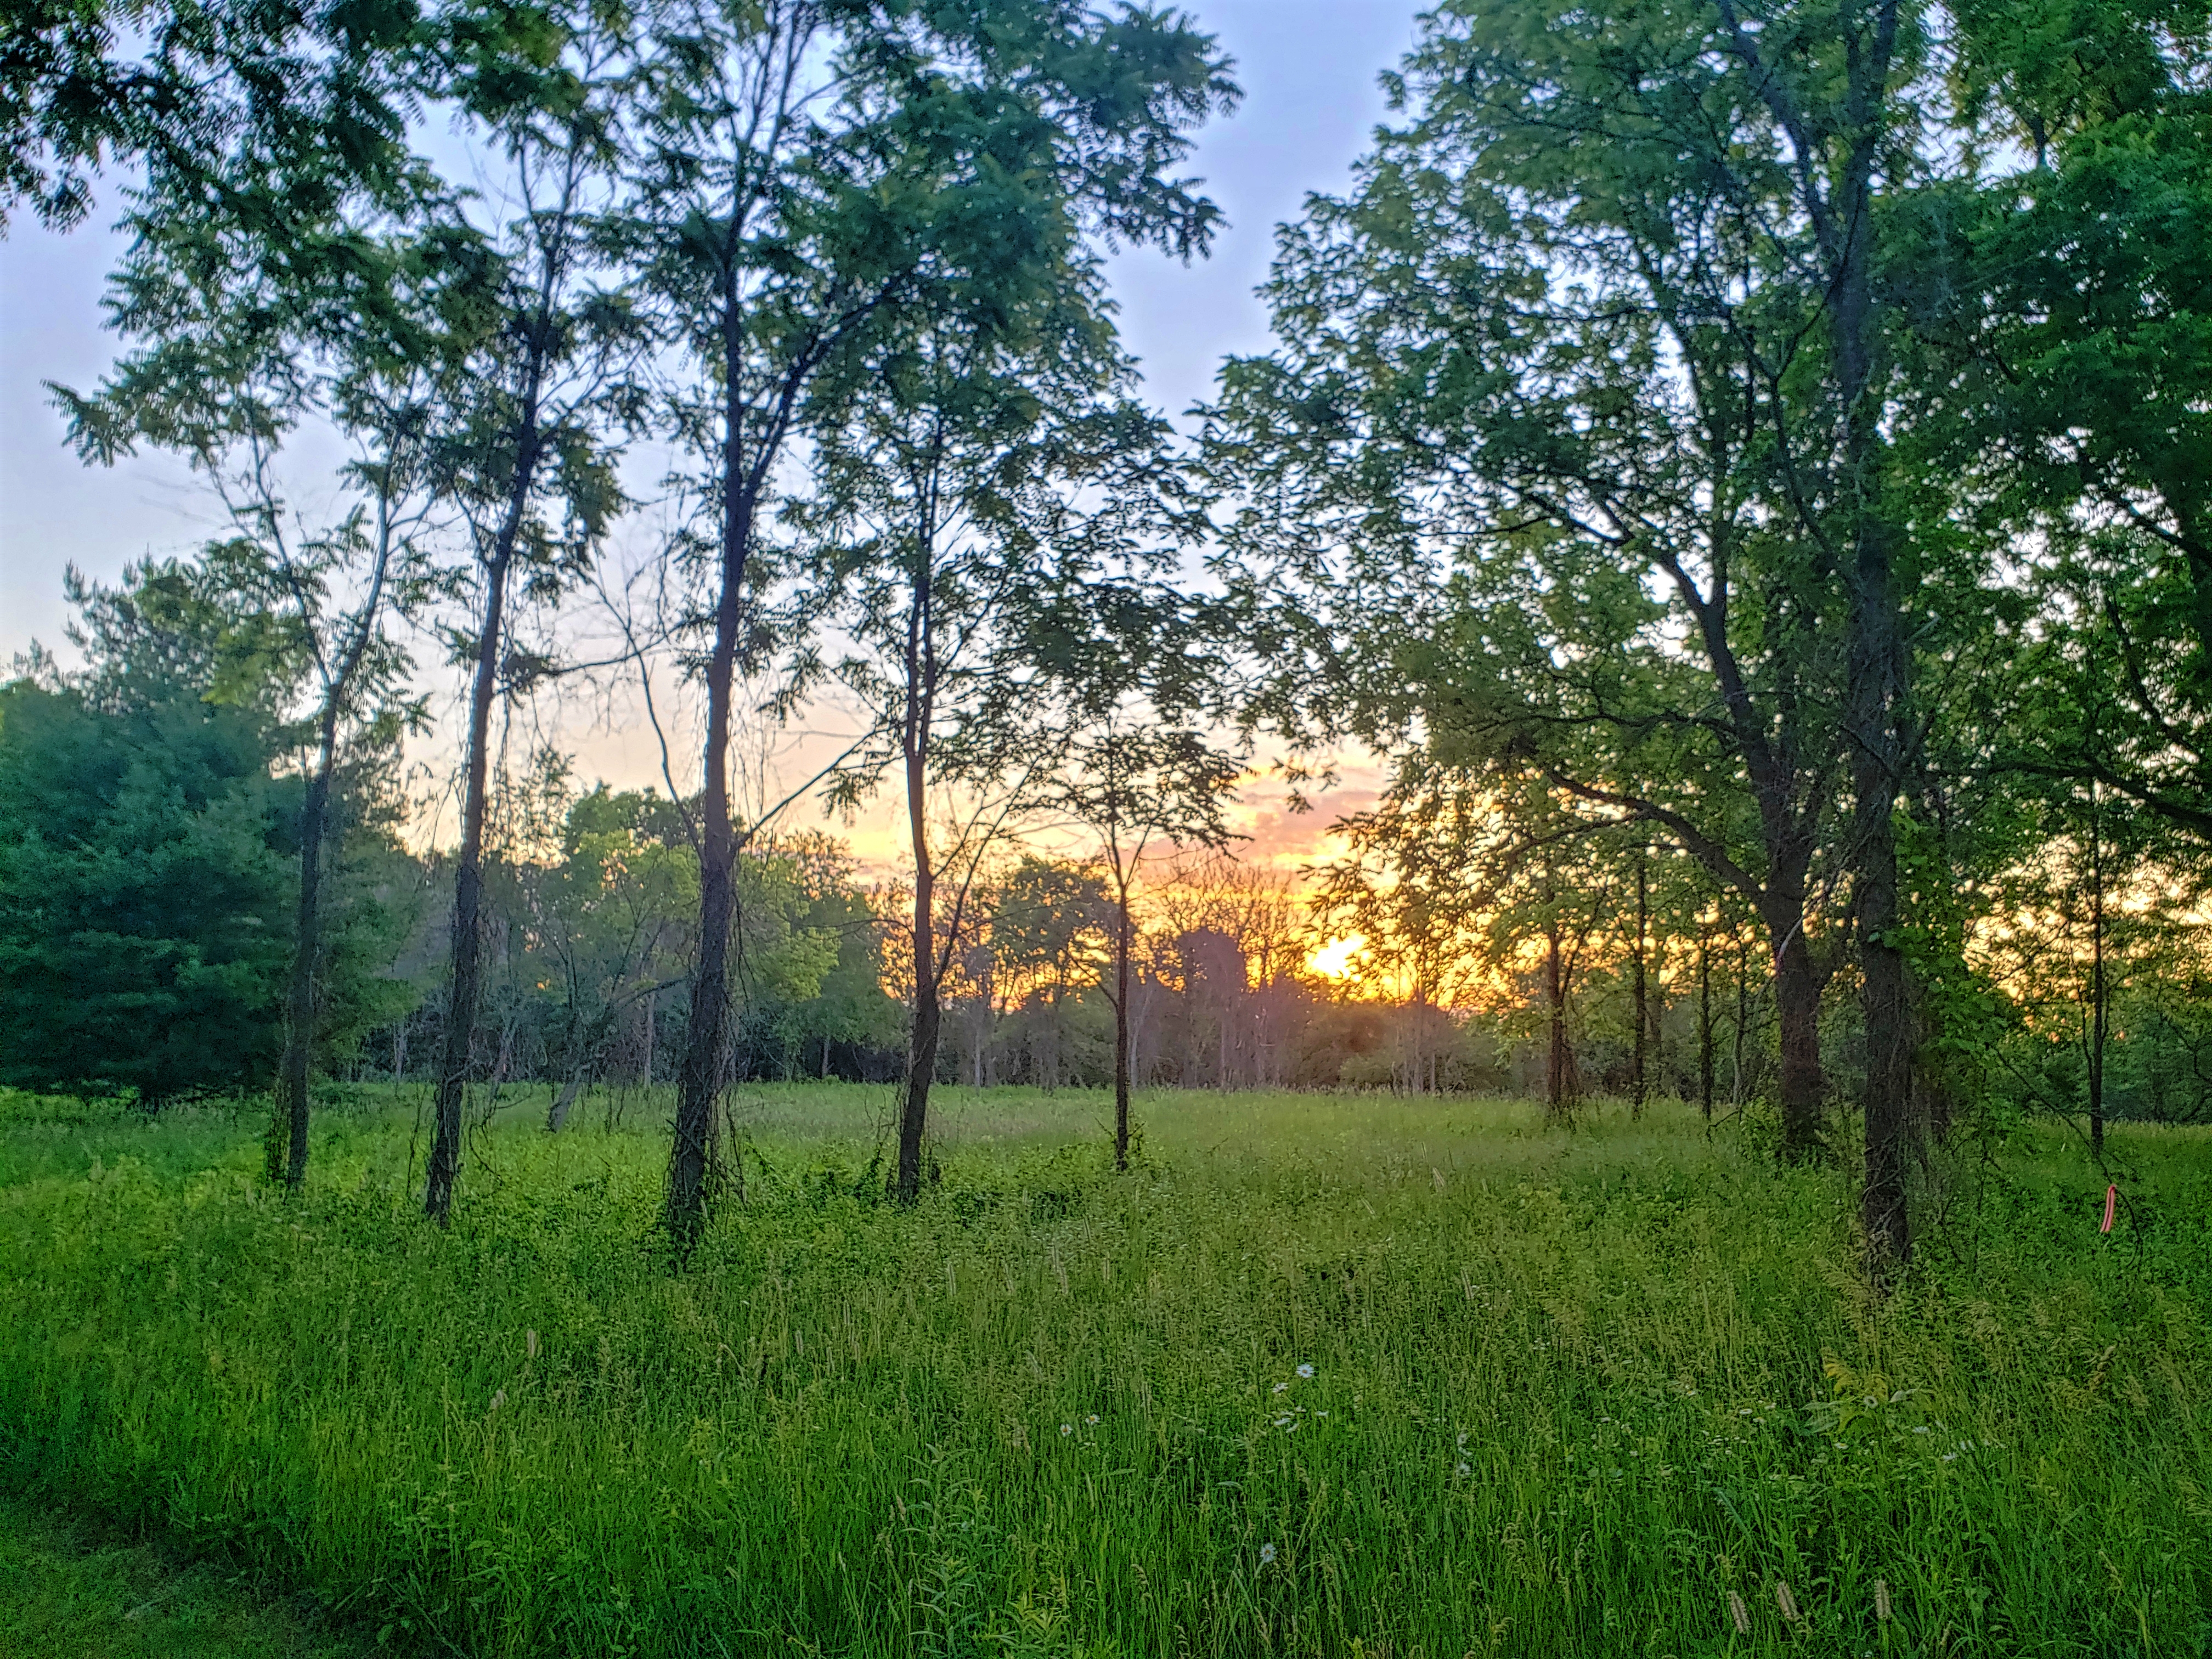 Sun rise in the woods at Draper Twin Lake Park.